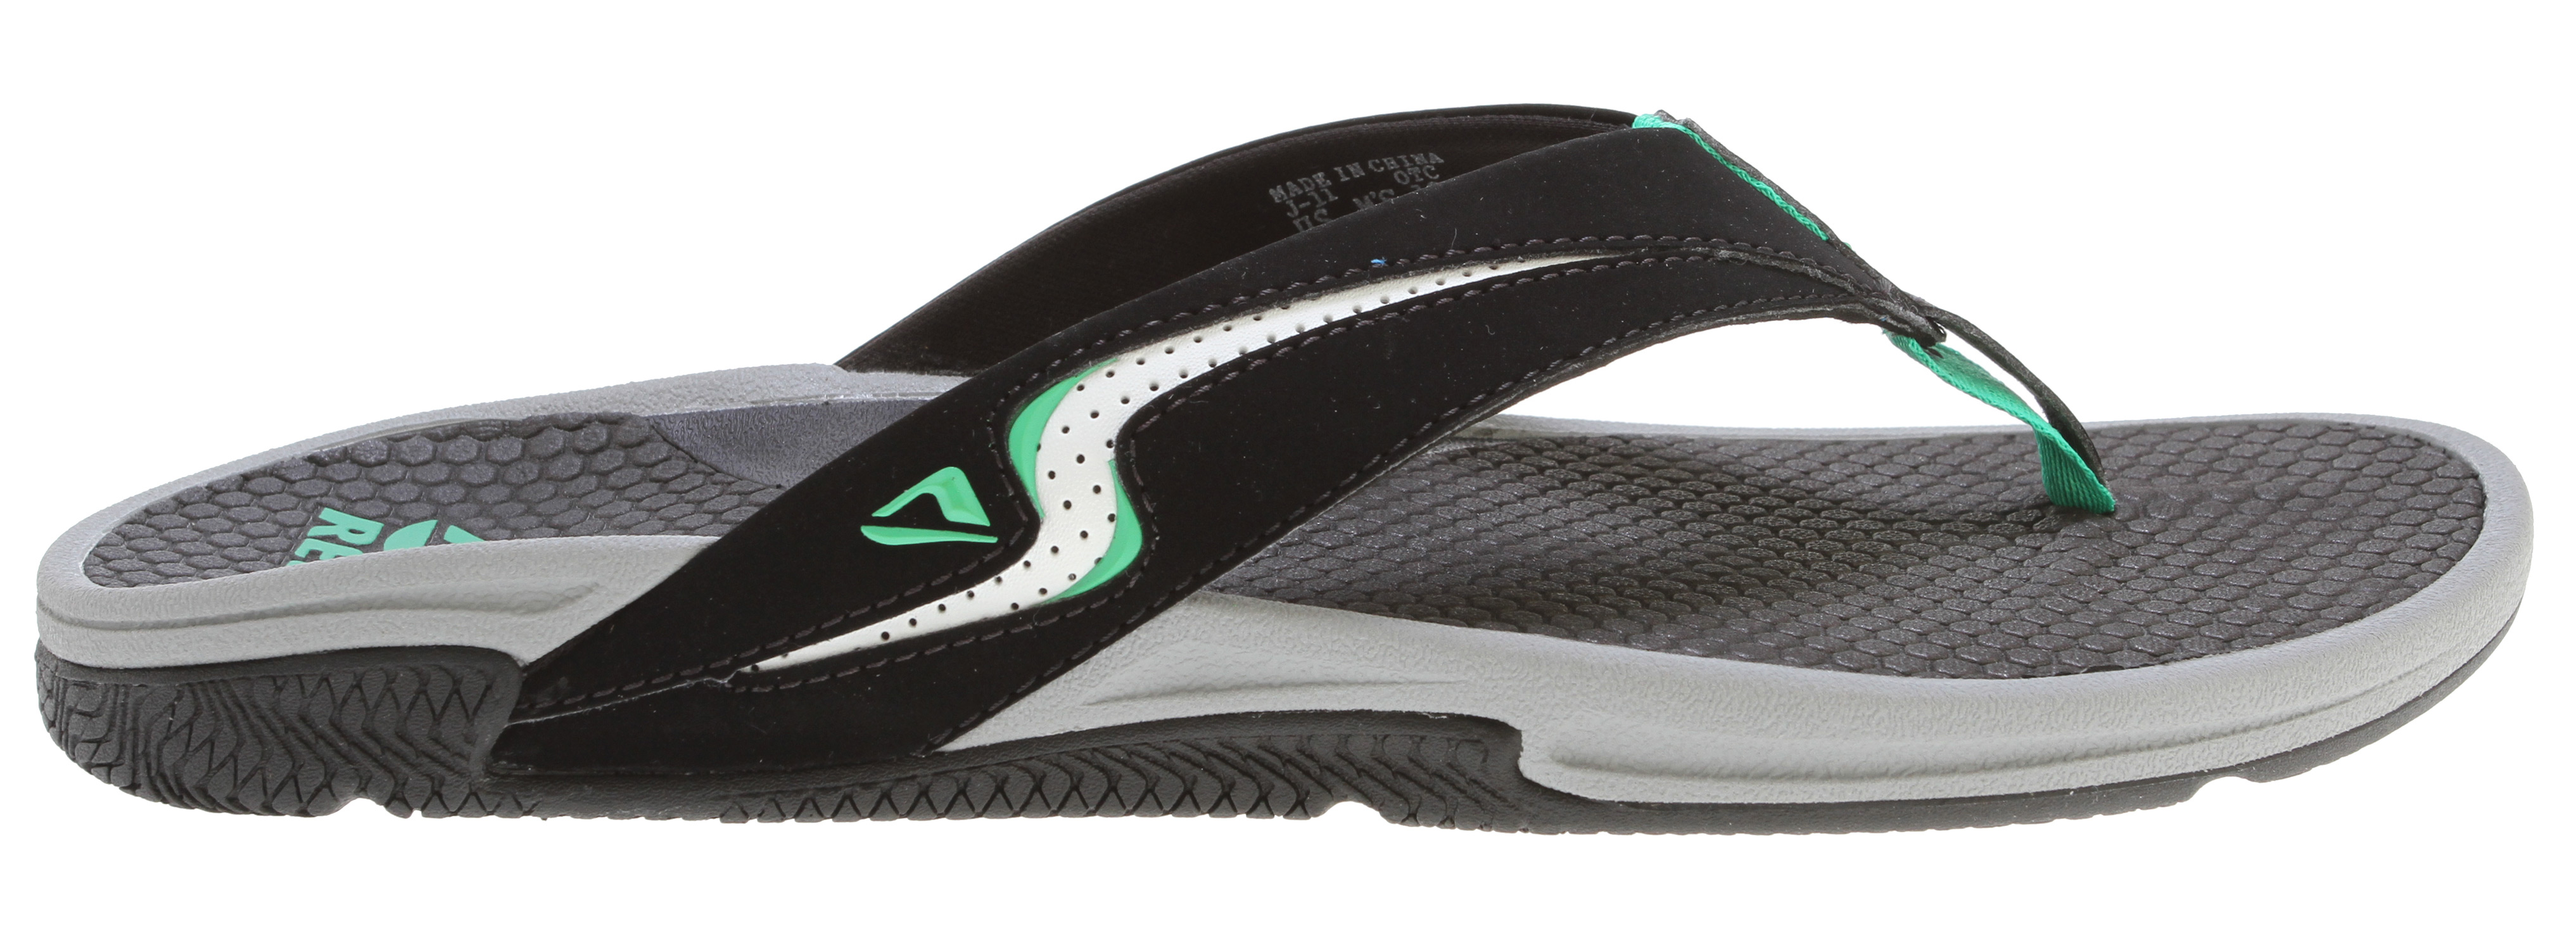 Surf Key Features of the Reef Arch-2 Sandals: Comfortable, water friendly synthetic nubuck upper Super soft synthetic foamed backed jersey lining Micro injected inlay strap design details Honey combed textured eva footbed for traction and breathability adjustable footbed technology with adjustable arch system in the midsole with adjuster key Deep contoured 51% recycled eva midsole Reef performance tread outsole made of 25% recycled rubber - $45.95